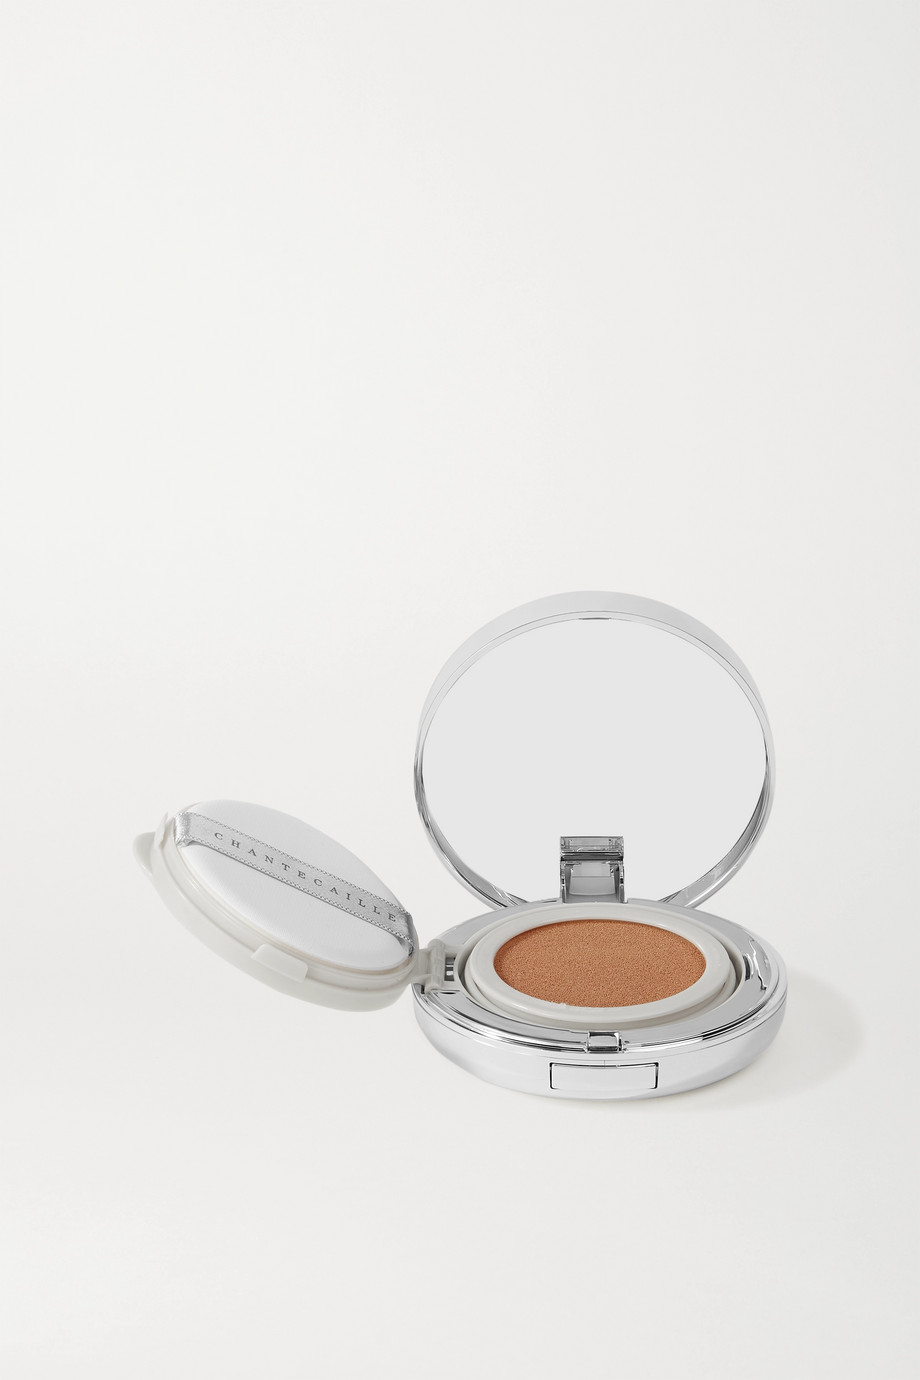 Chantecaille Future Skin Cushion Skincare Foundation - Nude